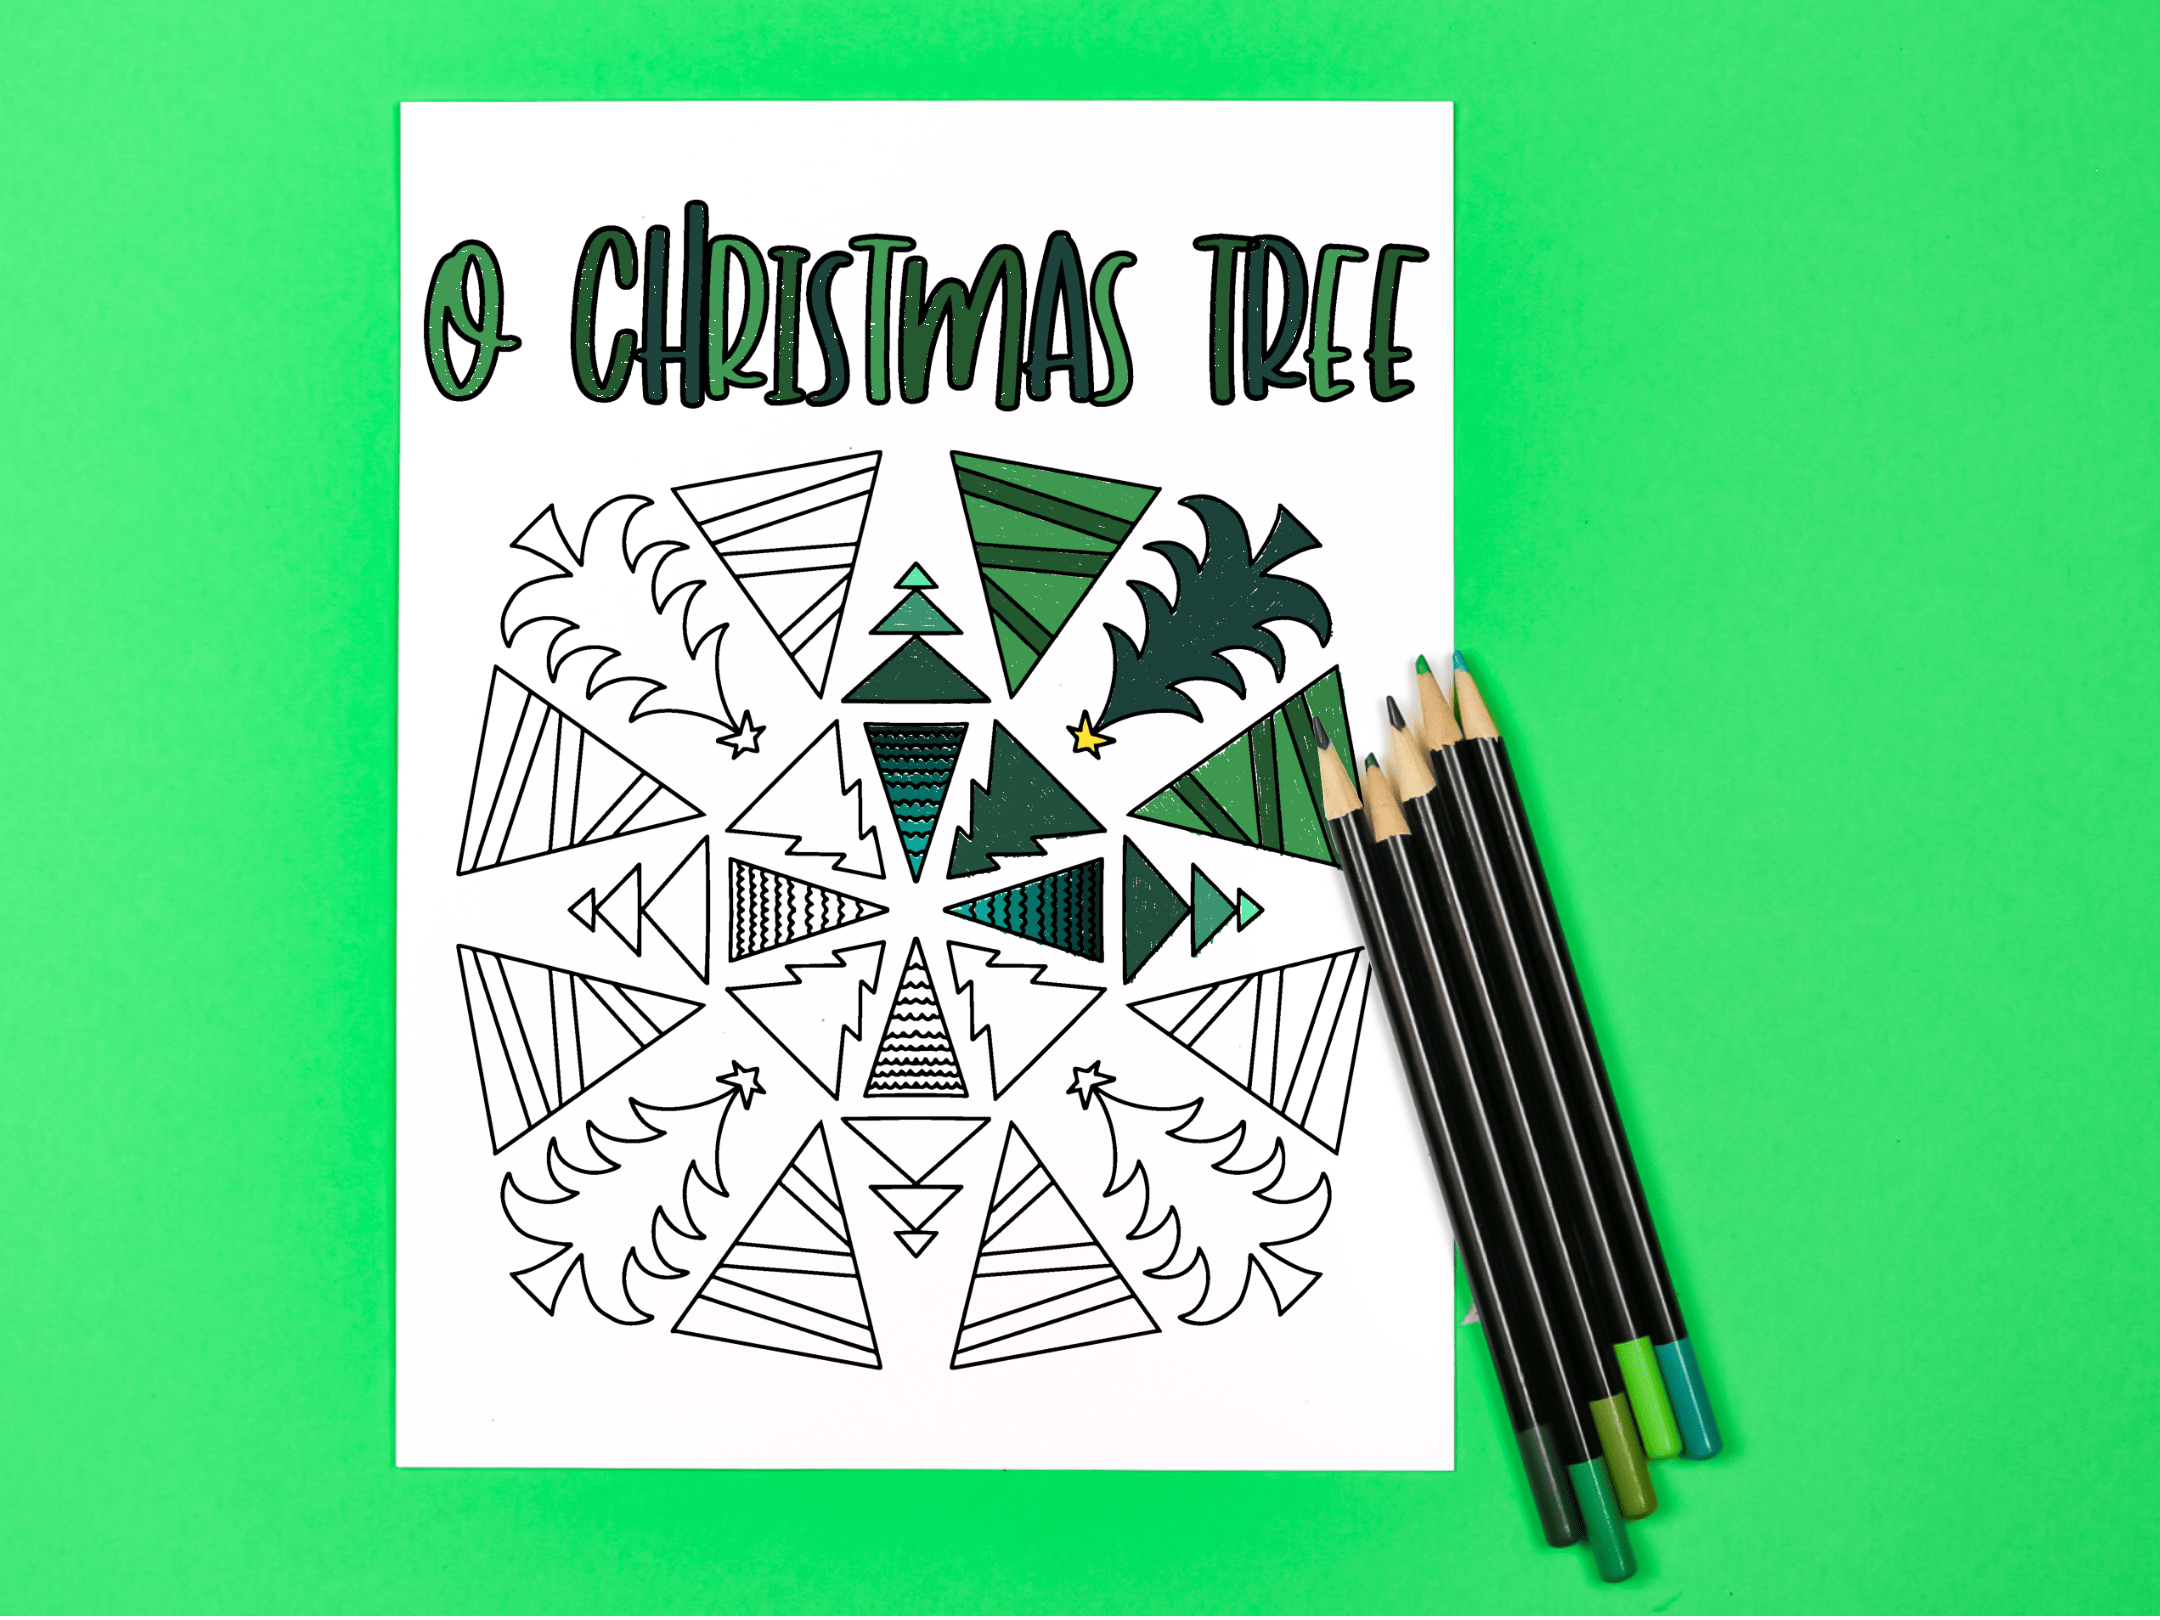 O Christmas Tree coloring page with colored pencils on a green background